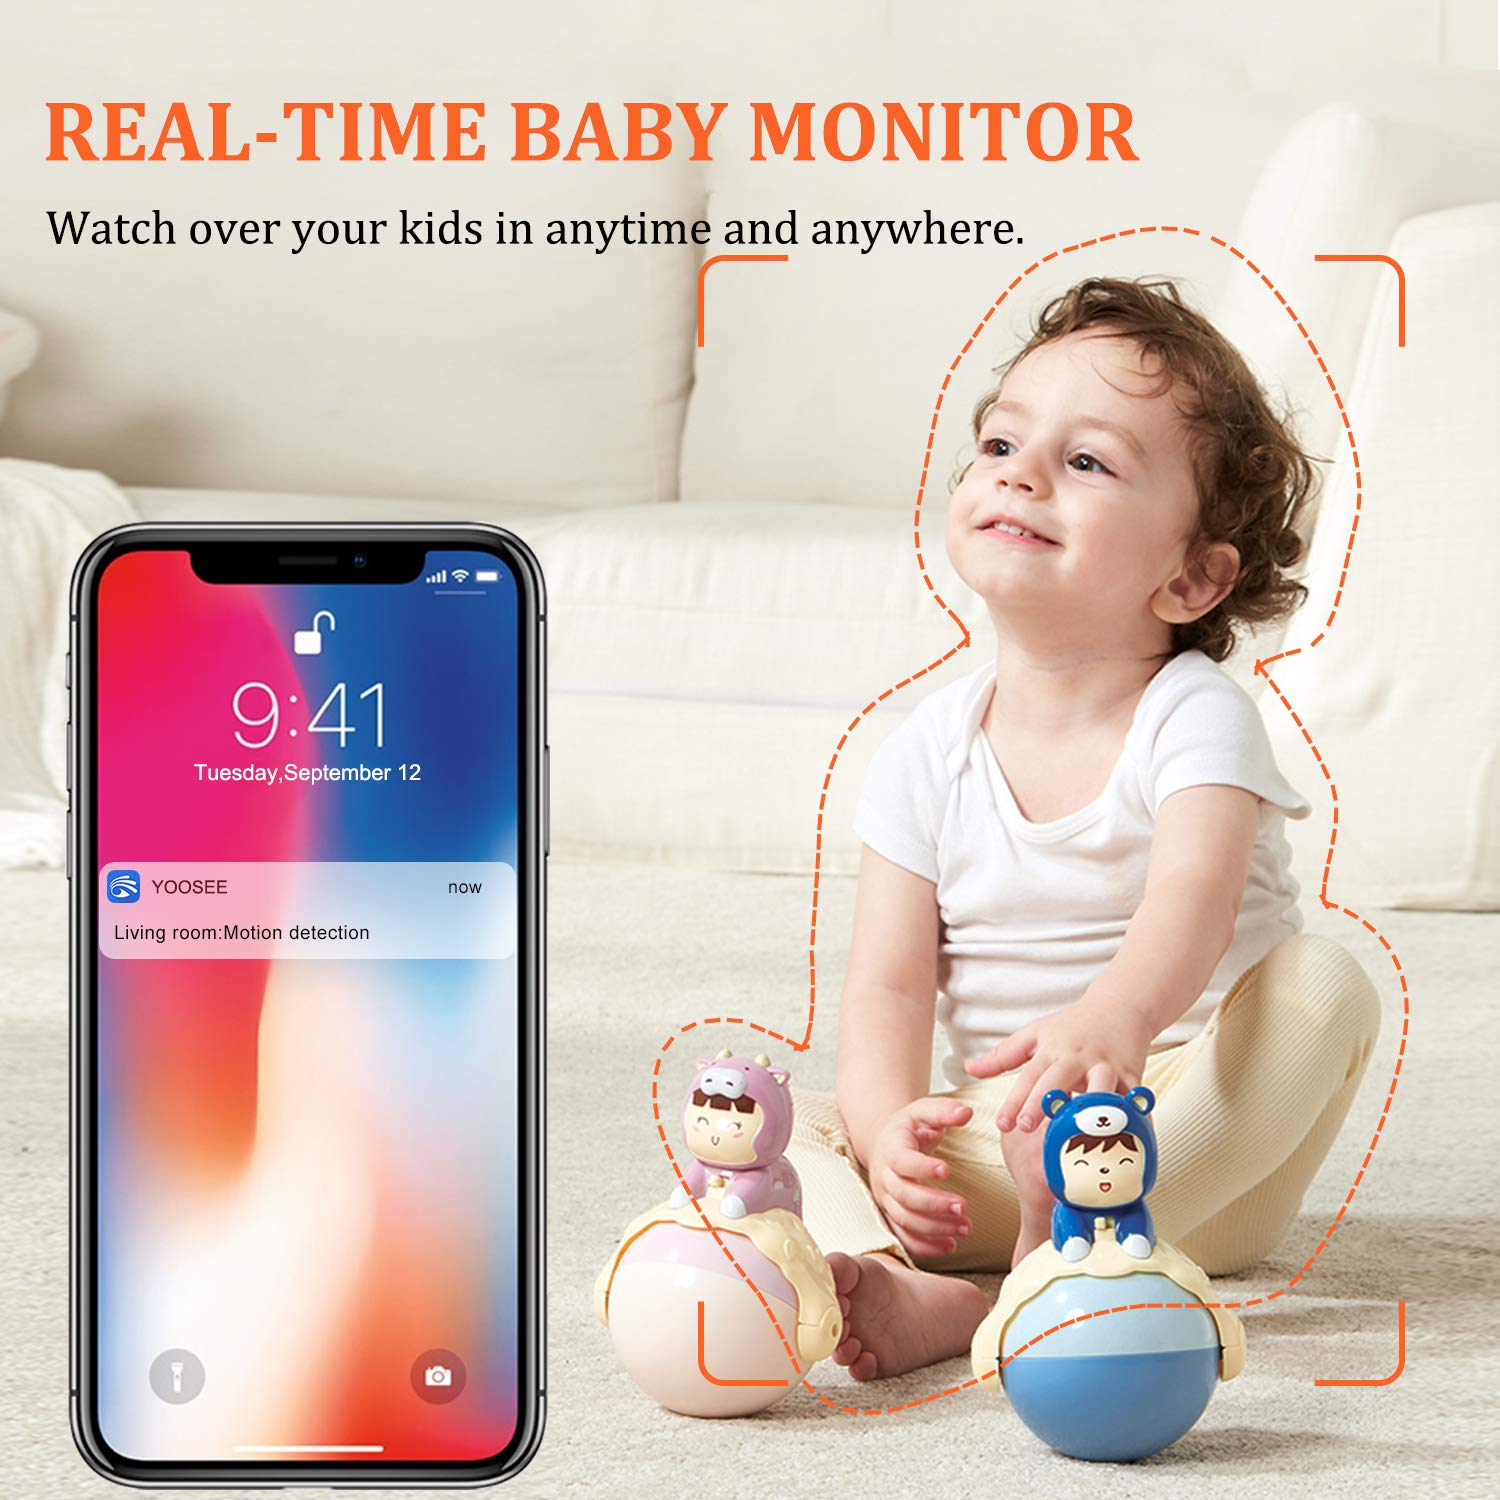 FullHD 1080p WiFi Camera, MSAFF Wireless Pan/Tilt/Zoom Home Security Camera for Baby Pet, IP Monitor Indoor Surveillance System with 32GB MicroSD Card, Night Version & 2-Way Audio, Android, iOS App